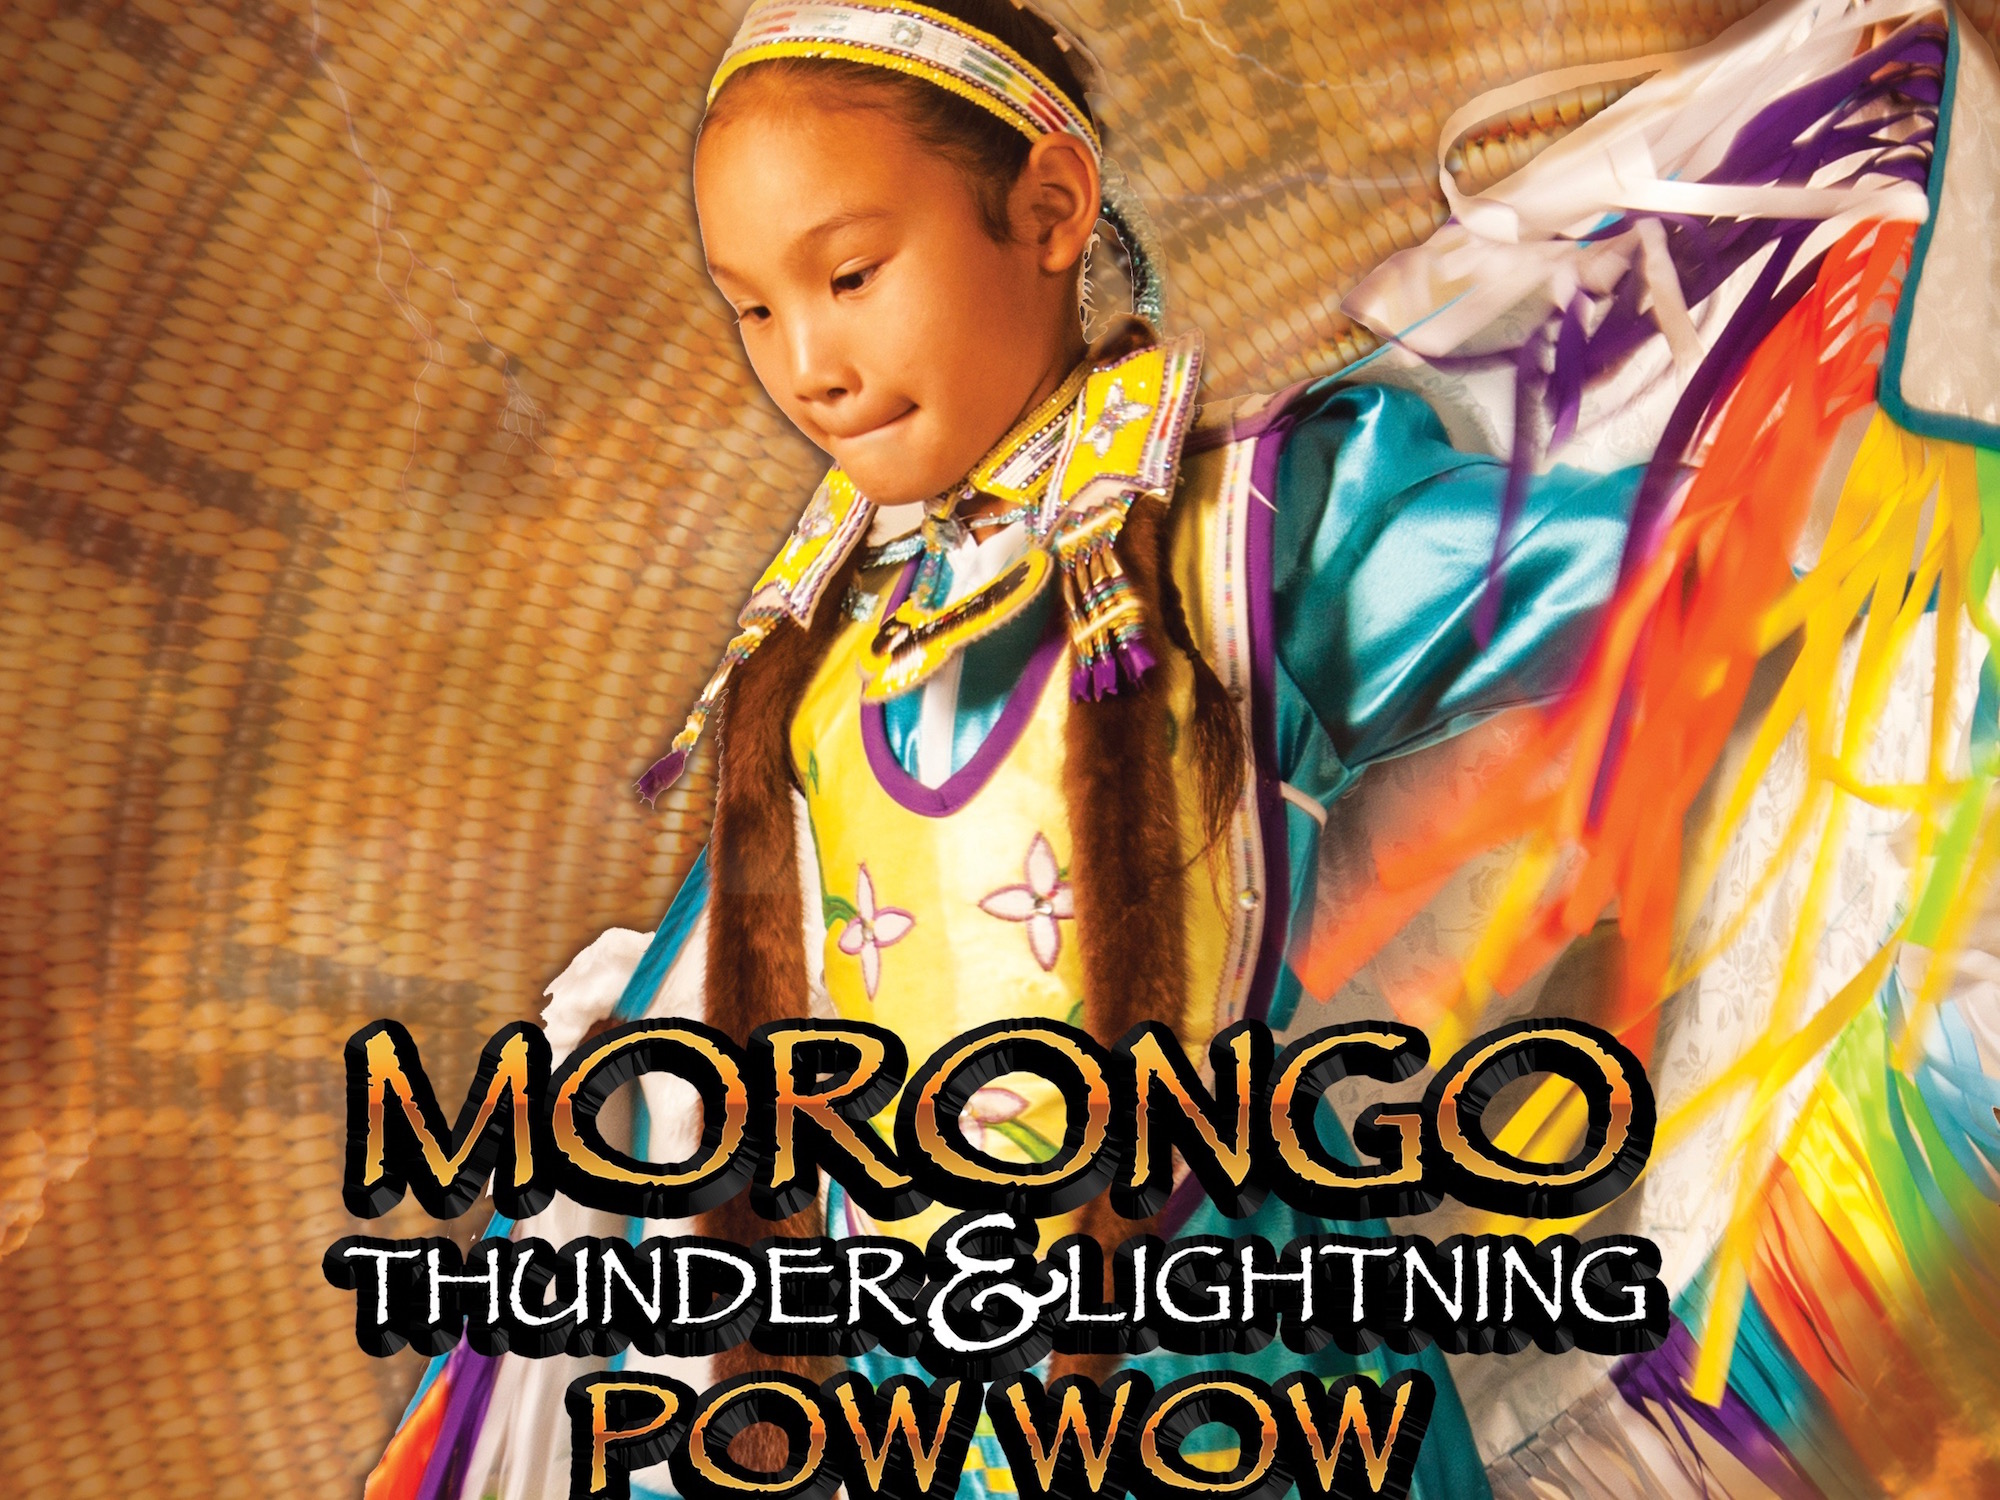 Morongo Band getting ready for Thunder & Lightning Powwow